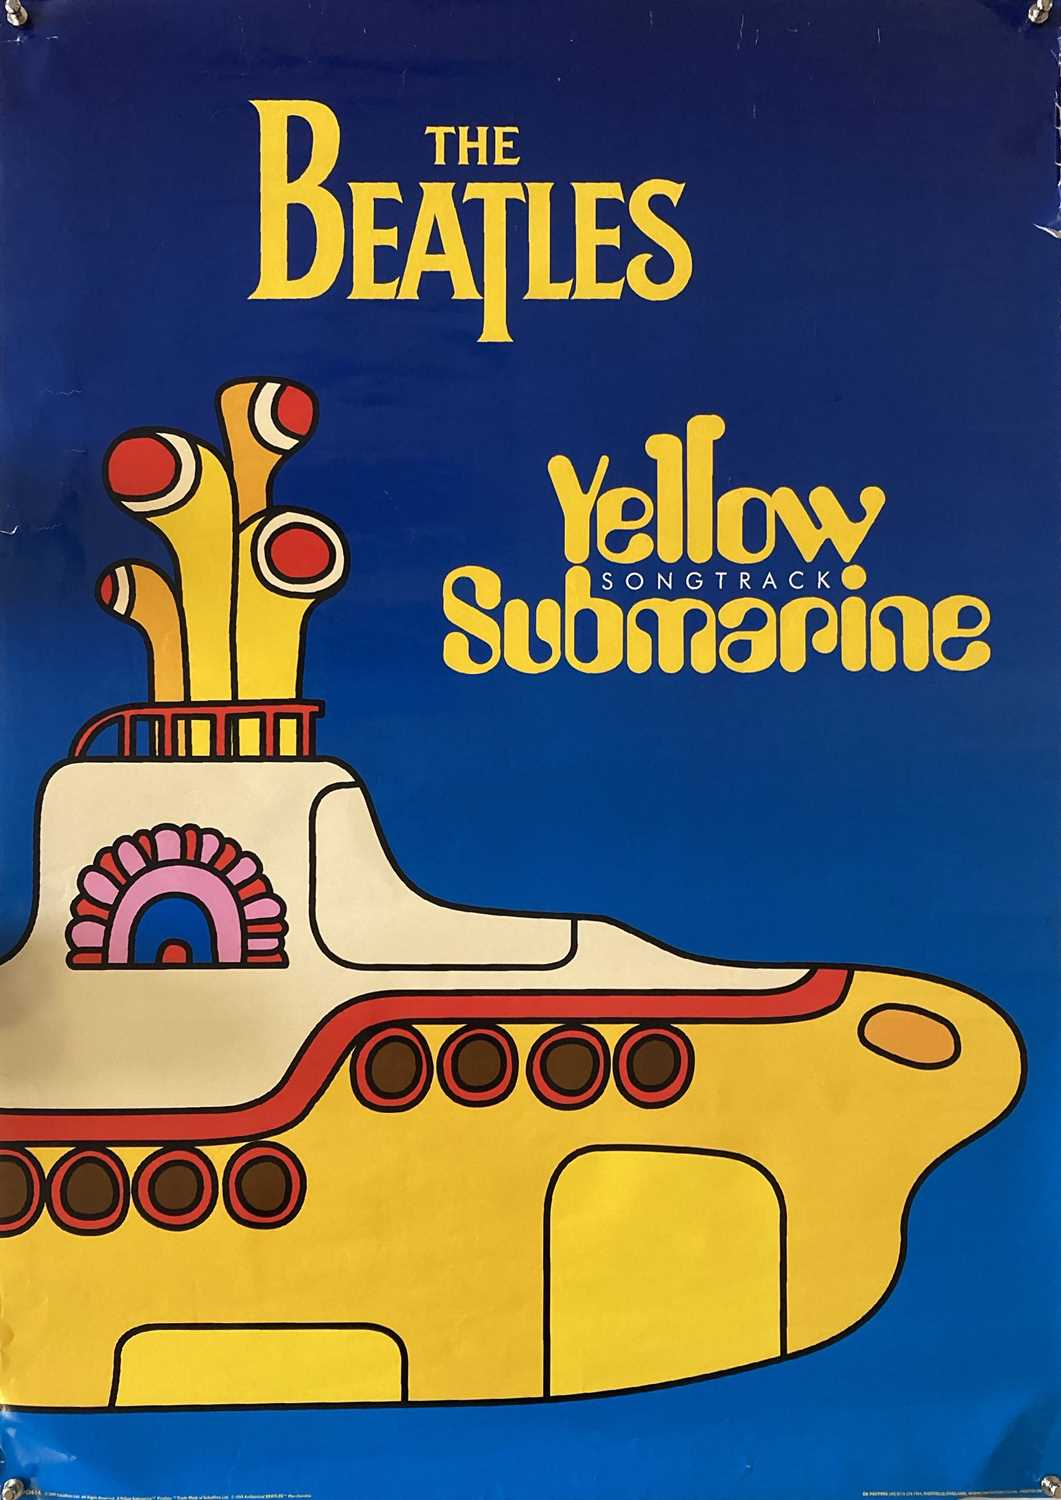 BEATLES / ROLLING STONES POSTERS. - Image 7 of 8